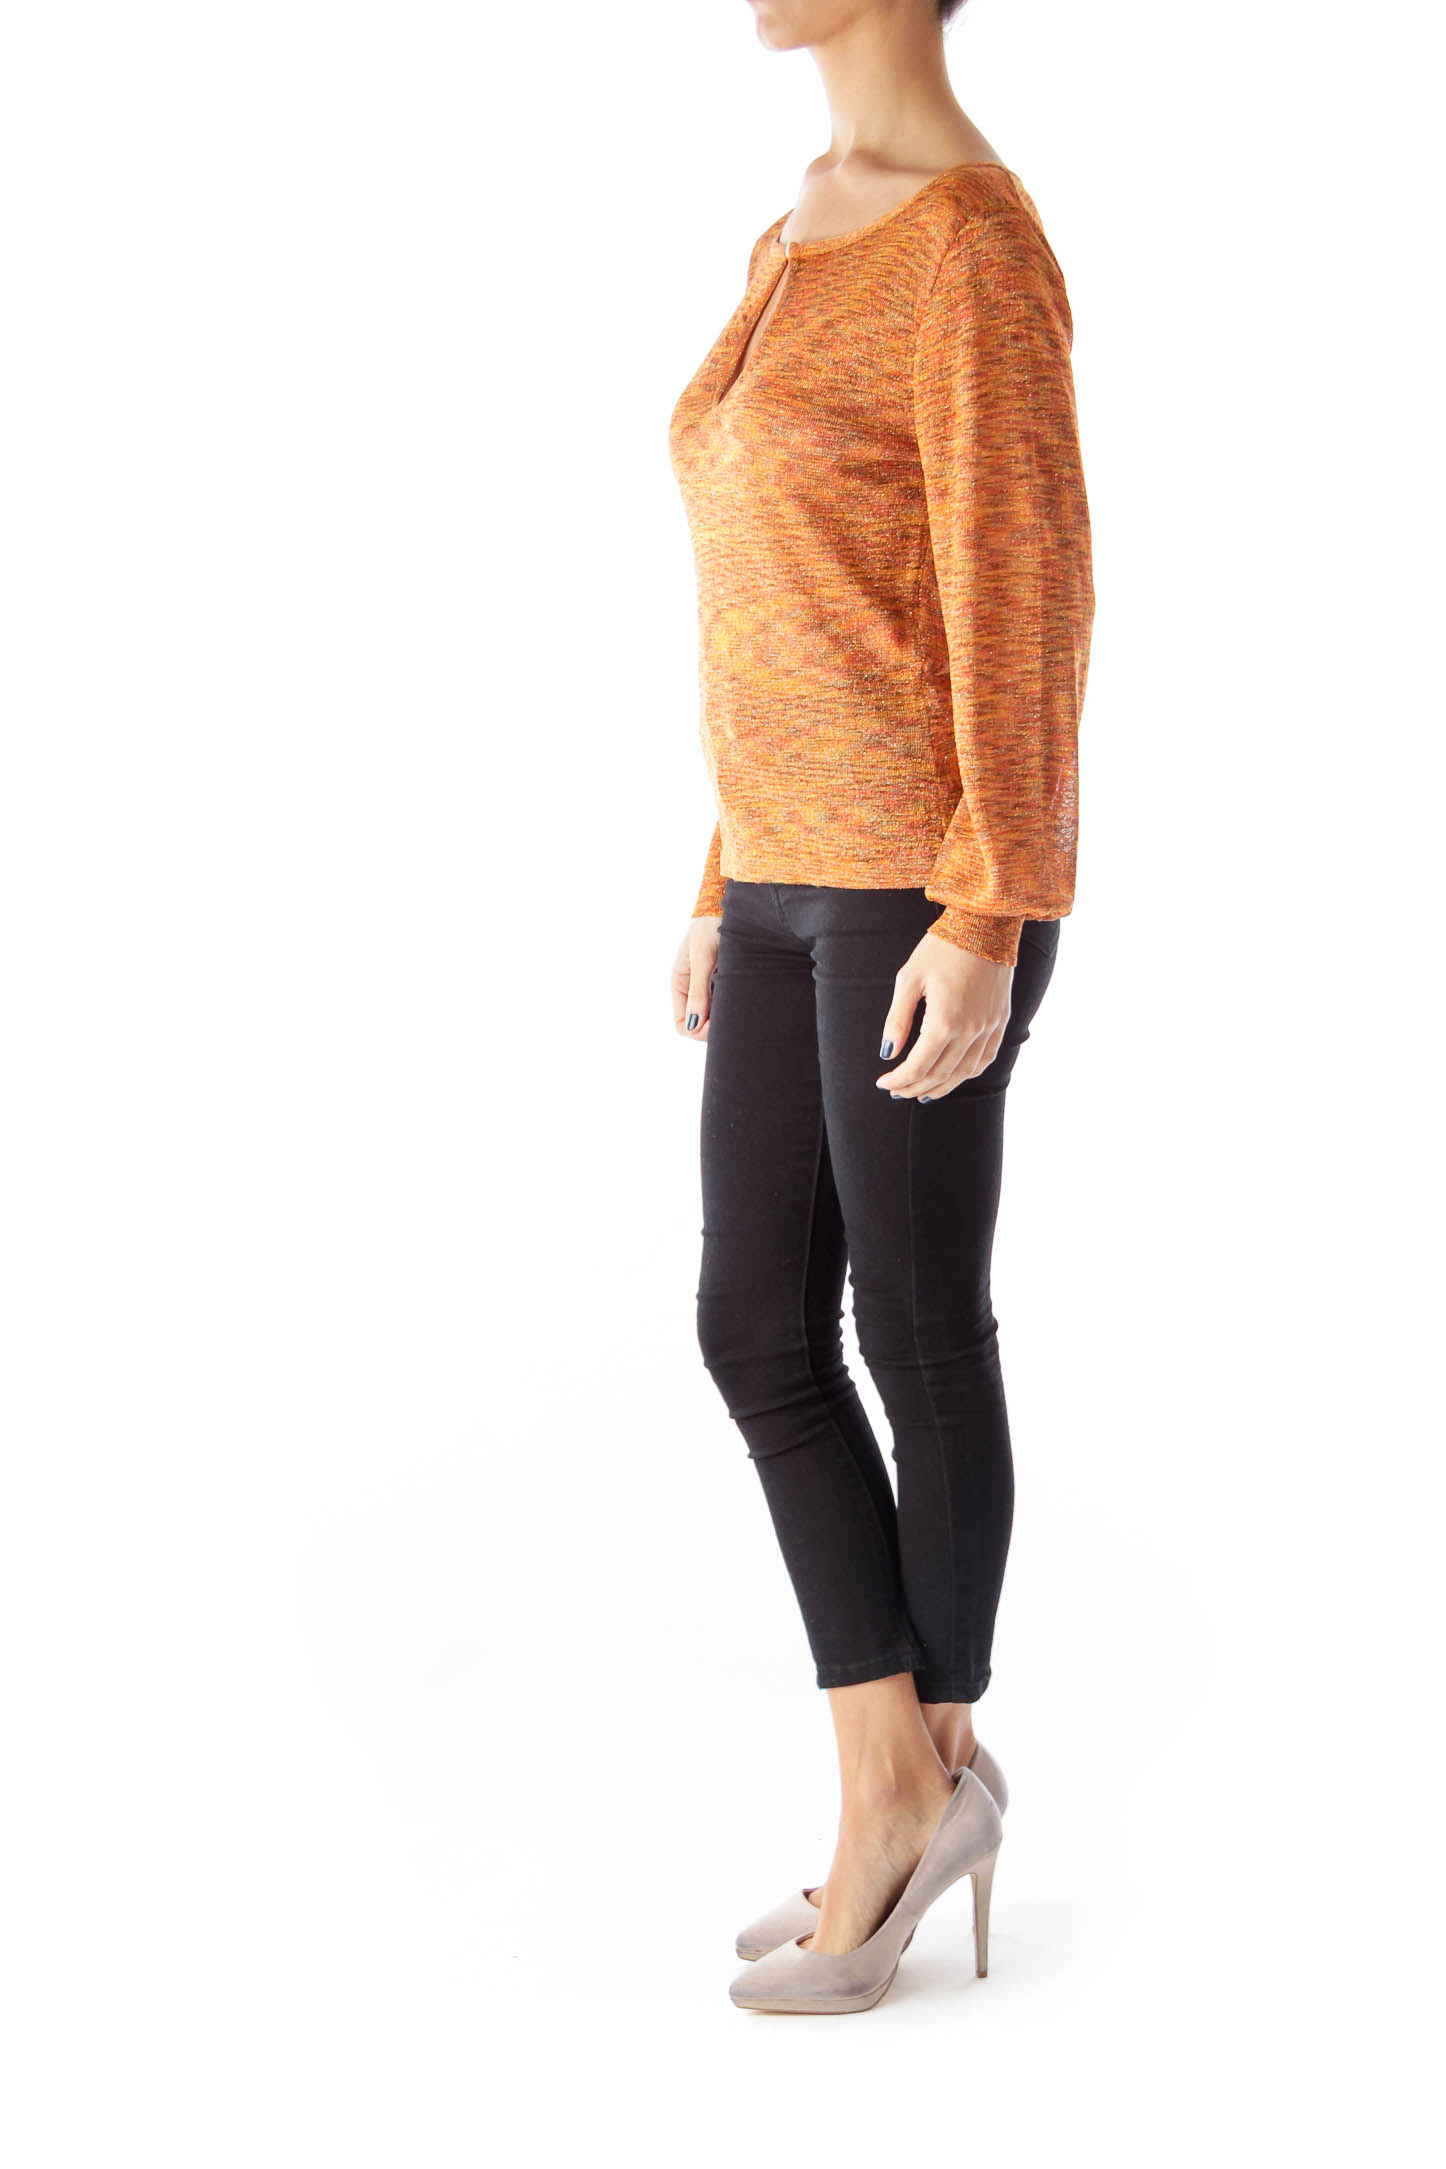 Orange Print Metallic Shirt